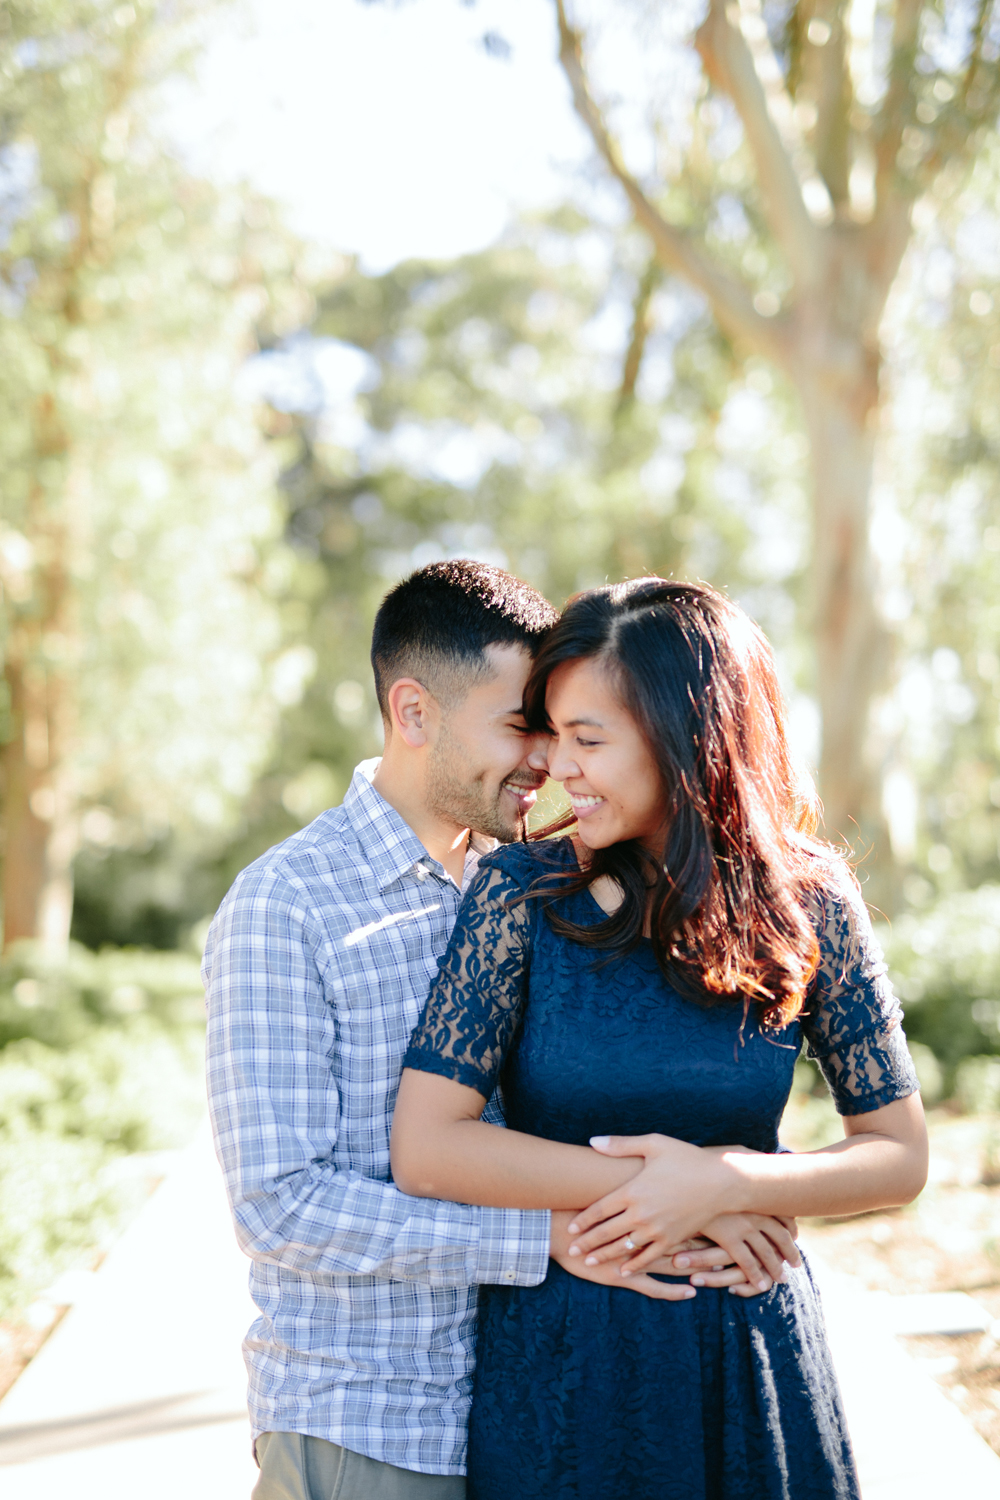 schyne-photography_engagement-photos_melvin-and-jessica_11